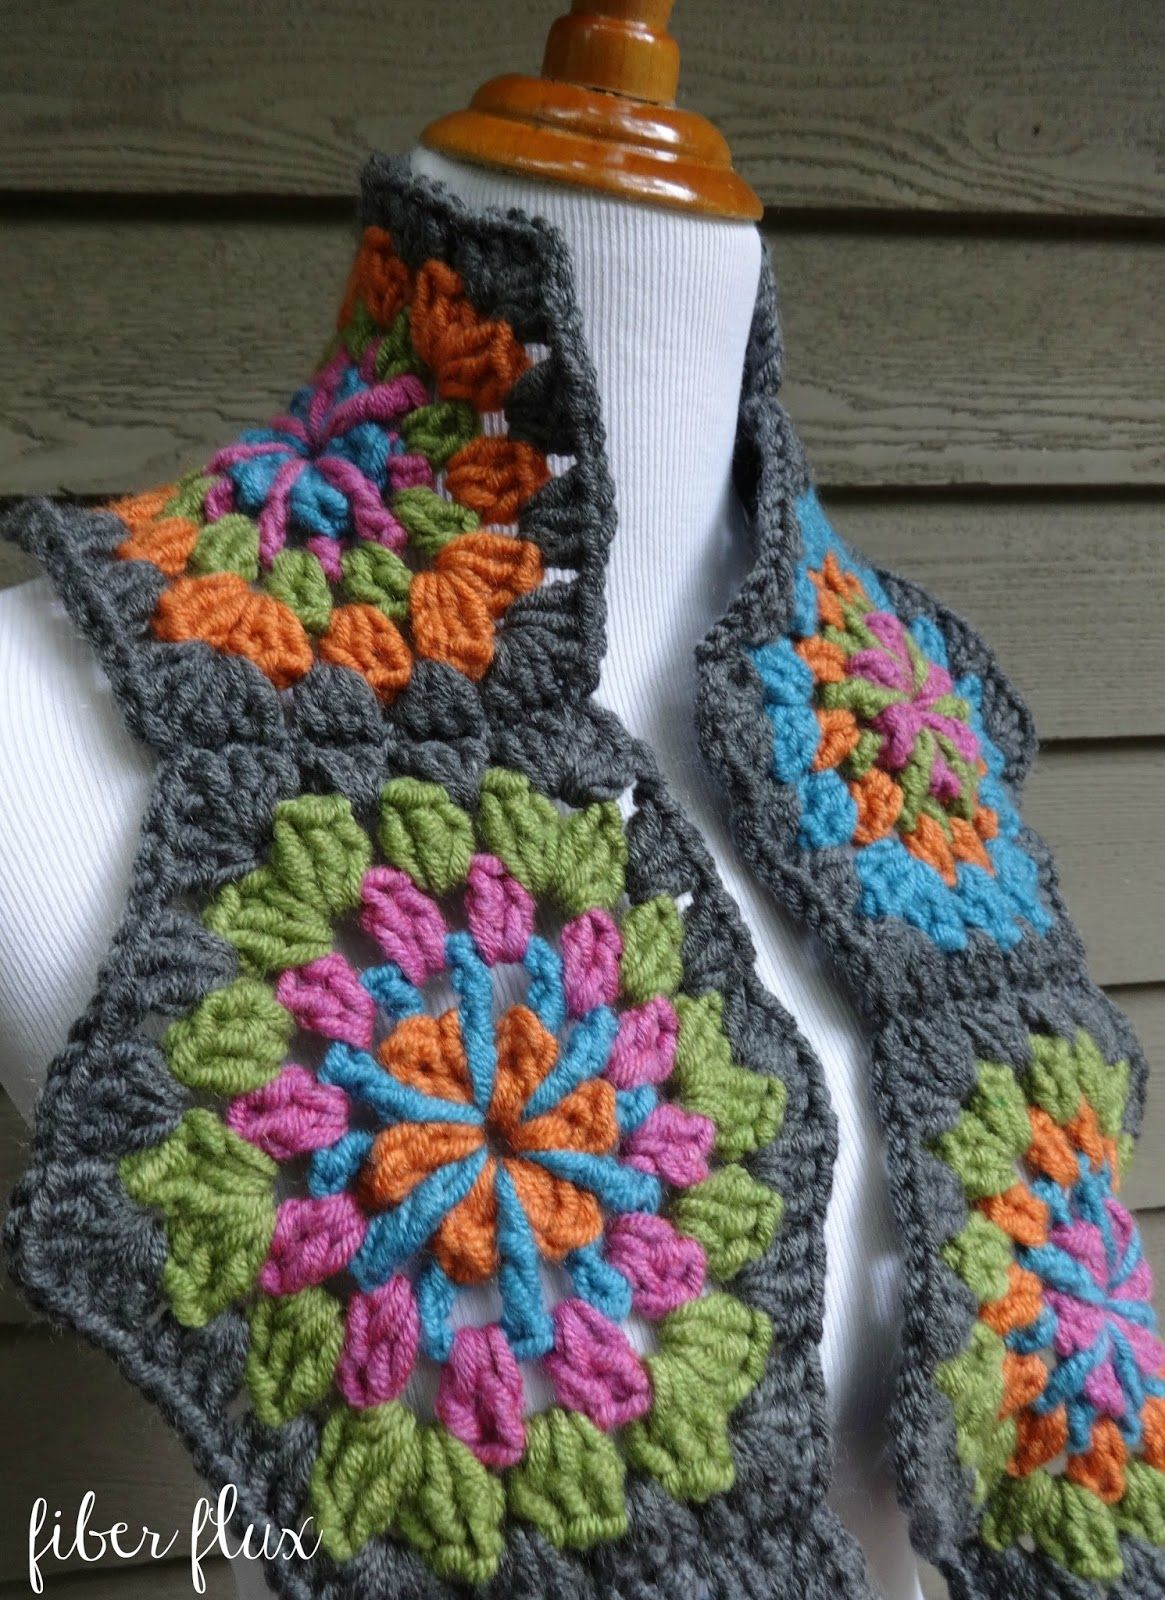 Free Crochet Pattern...Strawflower Hexagon Scarf!